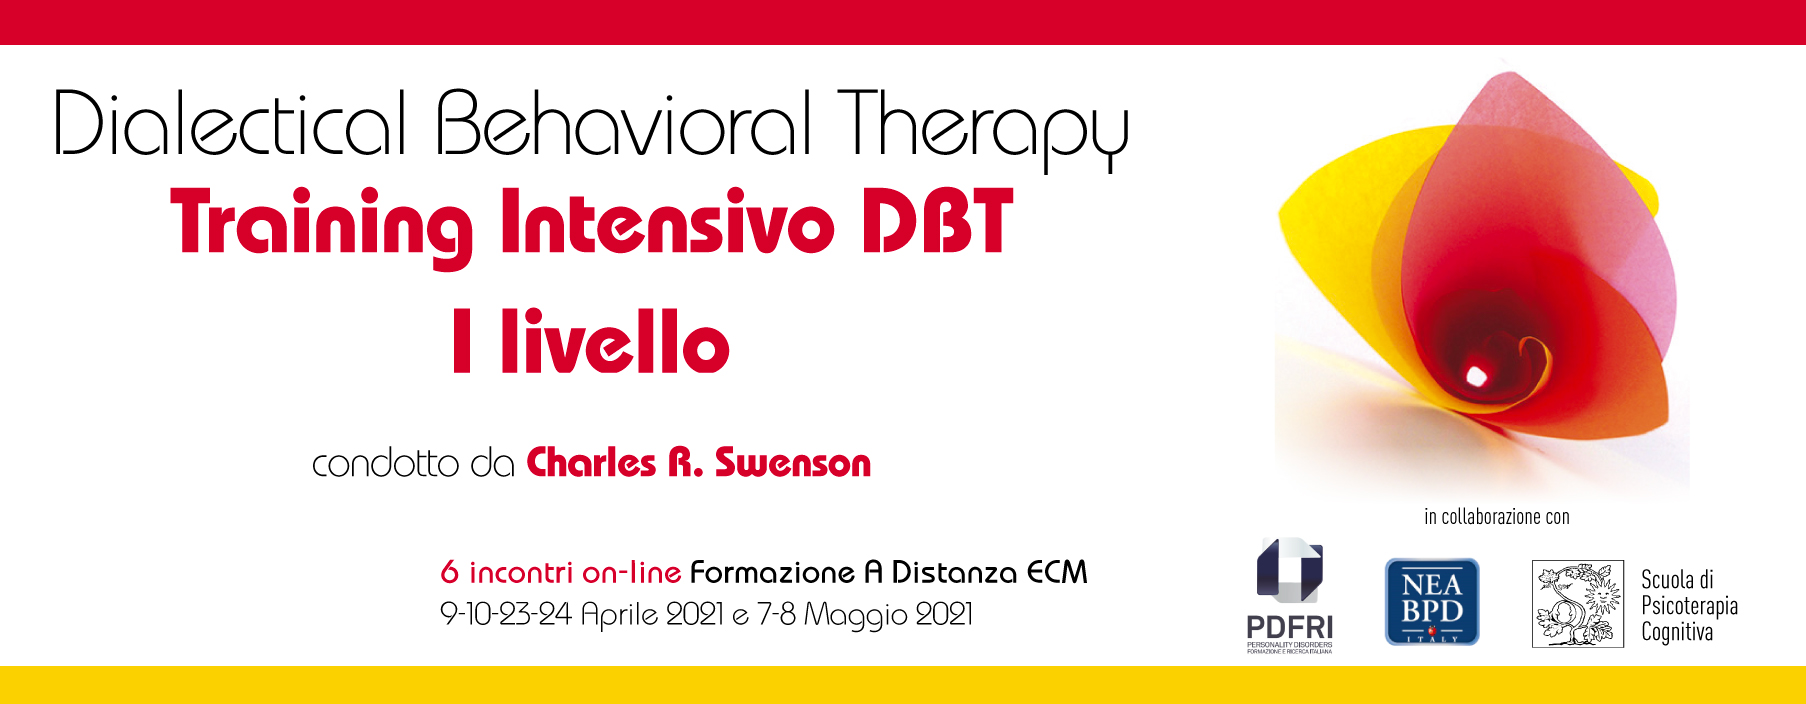 DIALECTICAL BEHAVIORAL THERAPY TRAINING INTENSIVO I LIVELLO